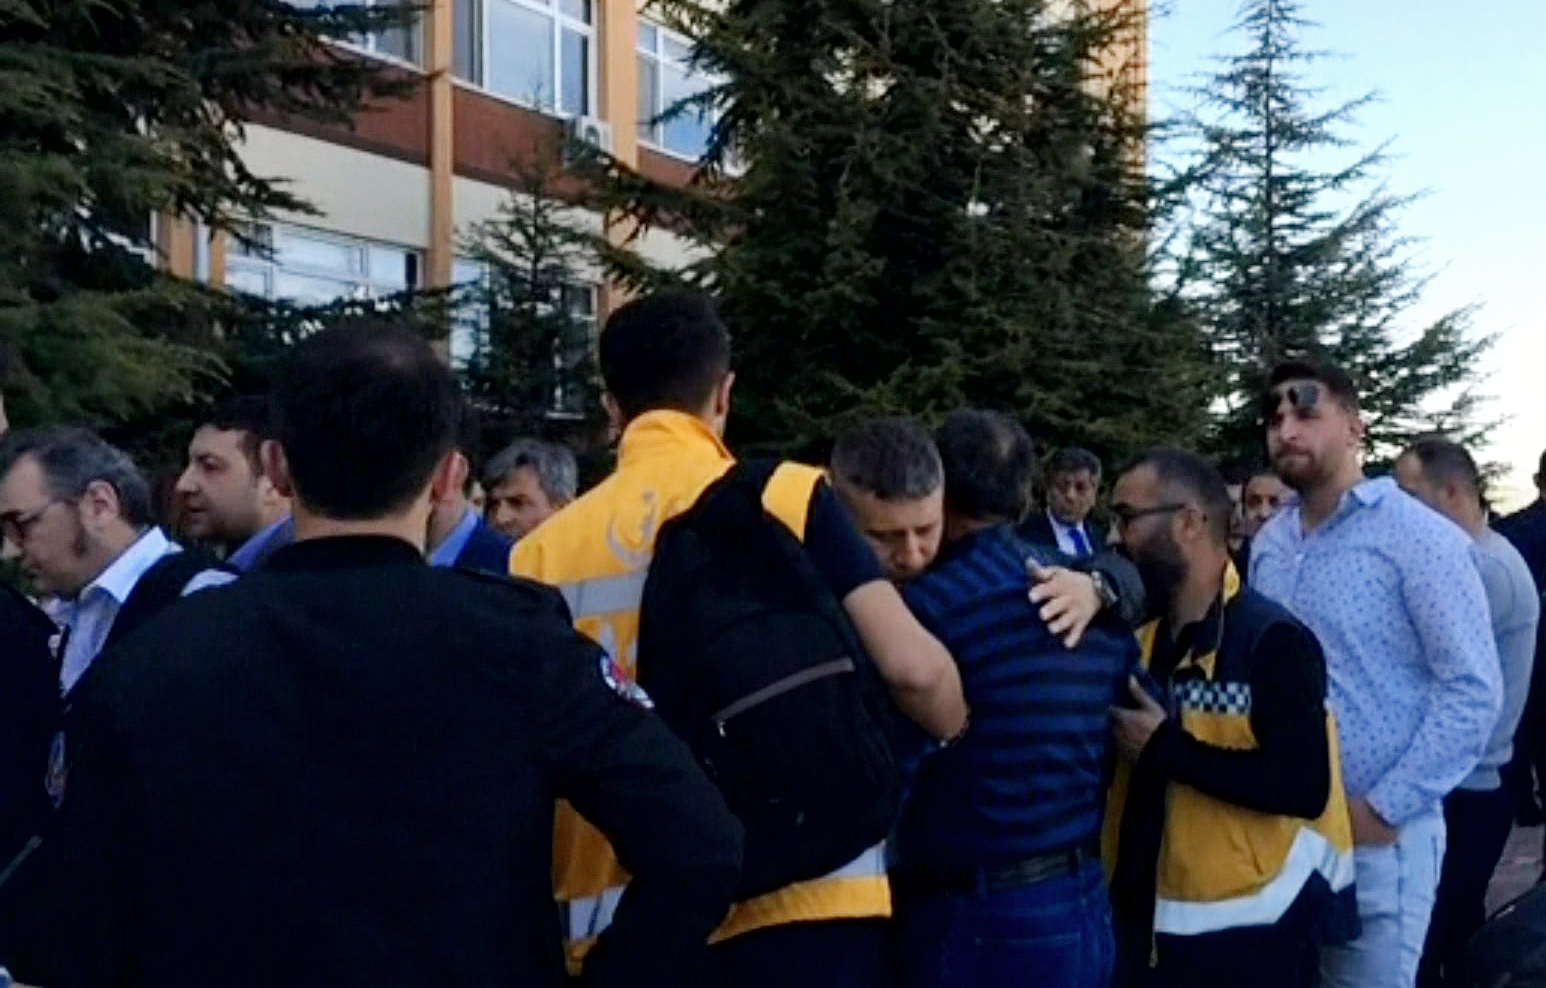 Turkey university shooting leaves 4 dead after gunman goes on rampage